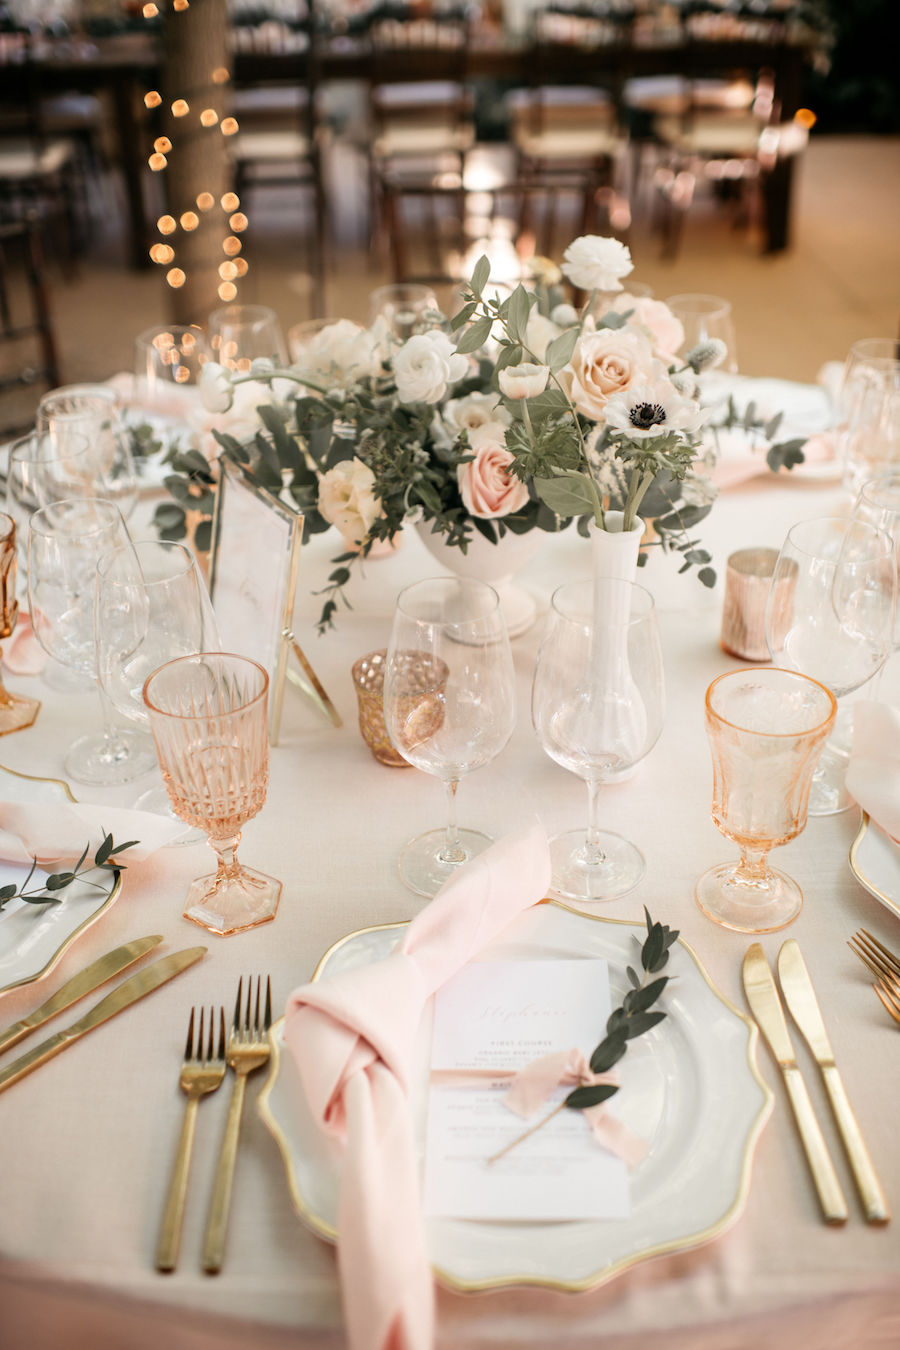 Romantic Pastel Tuscan Inspired Wedding Featured on Strictly Weddings86.jpg